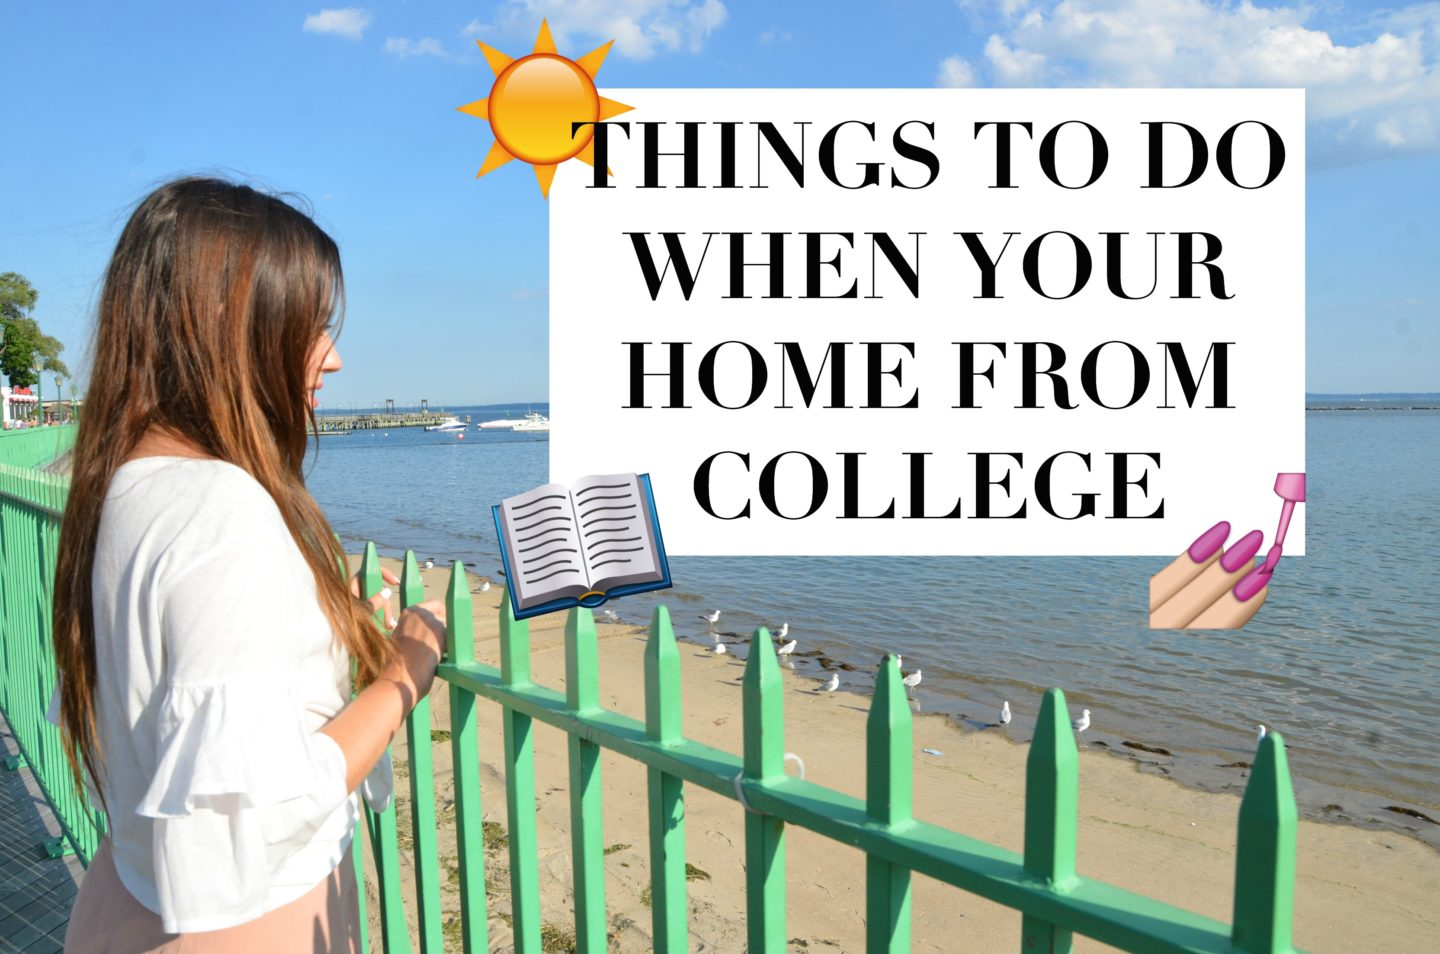 27 Things to Do When Your Home From College